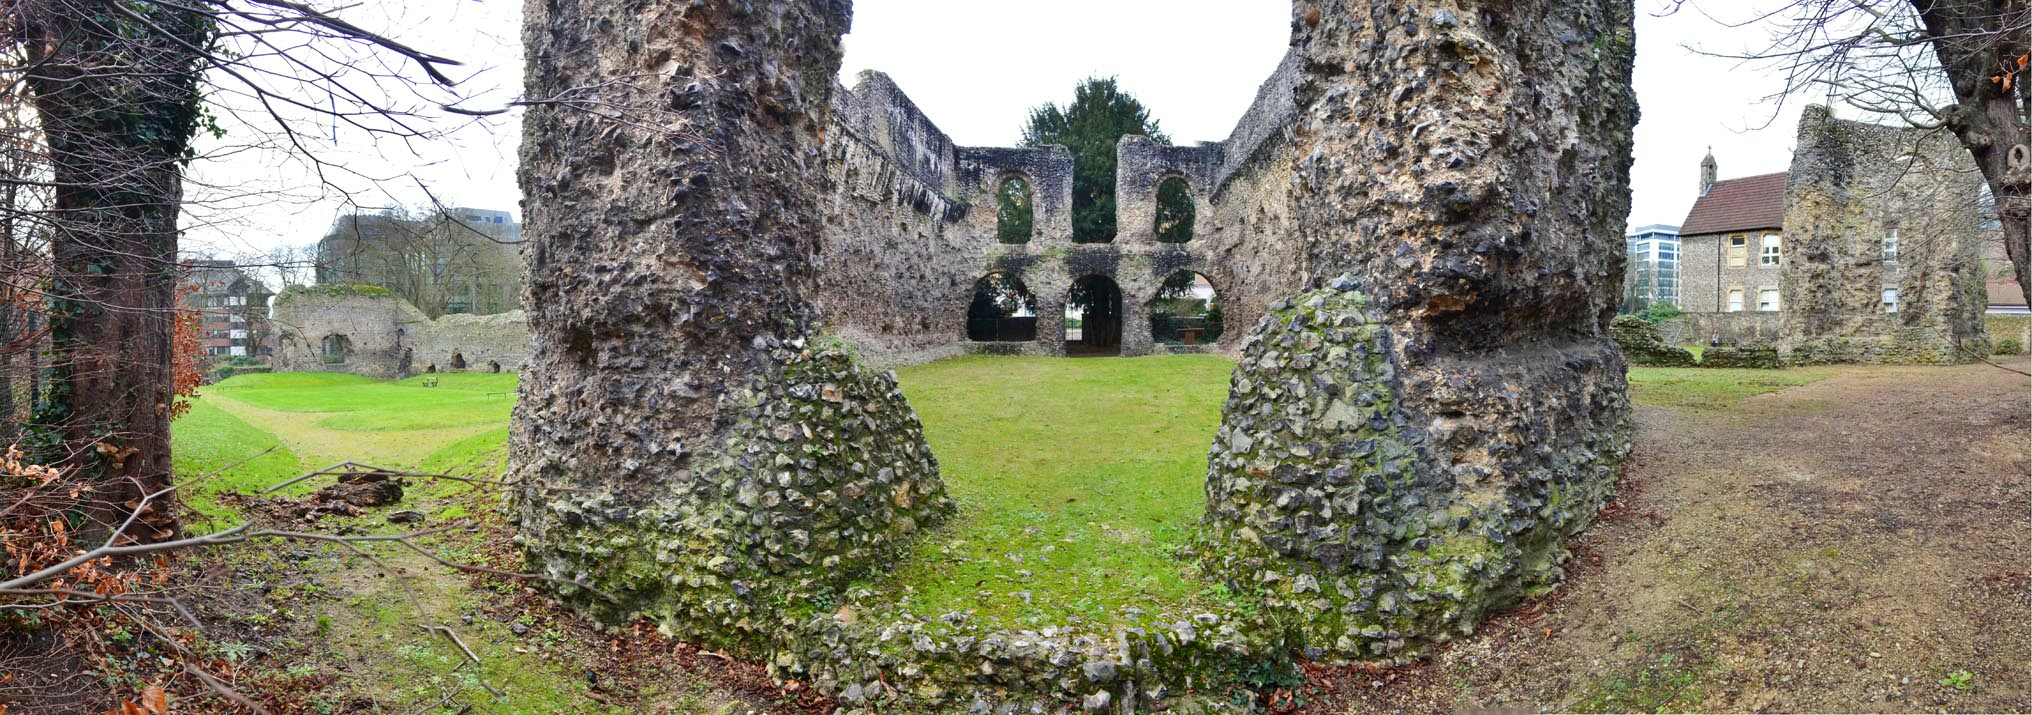 A picture of the abbey ruins in Reading